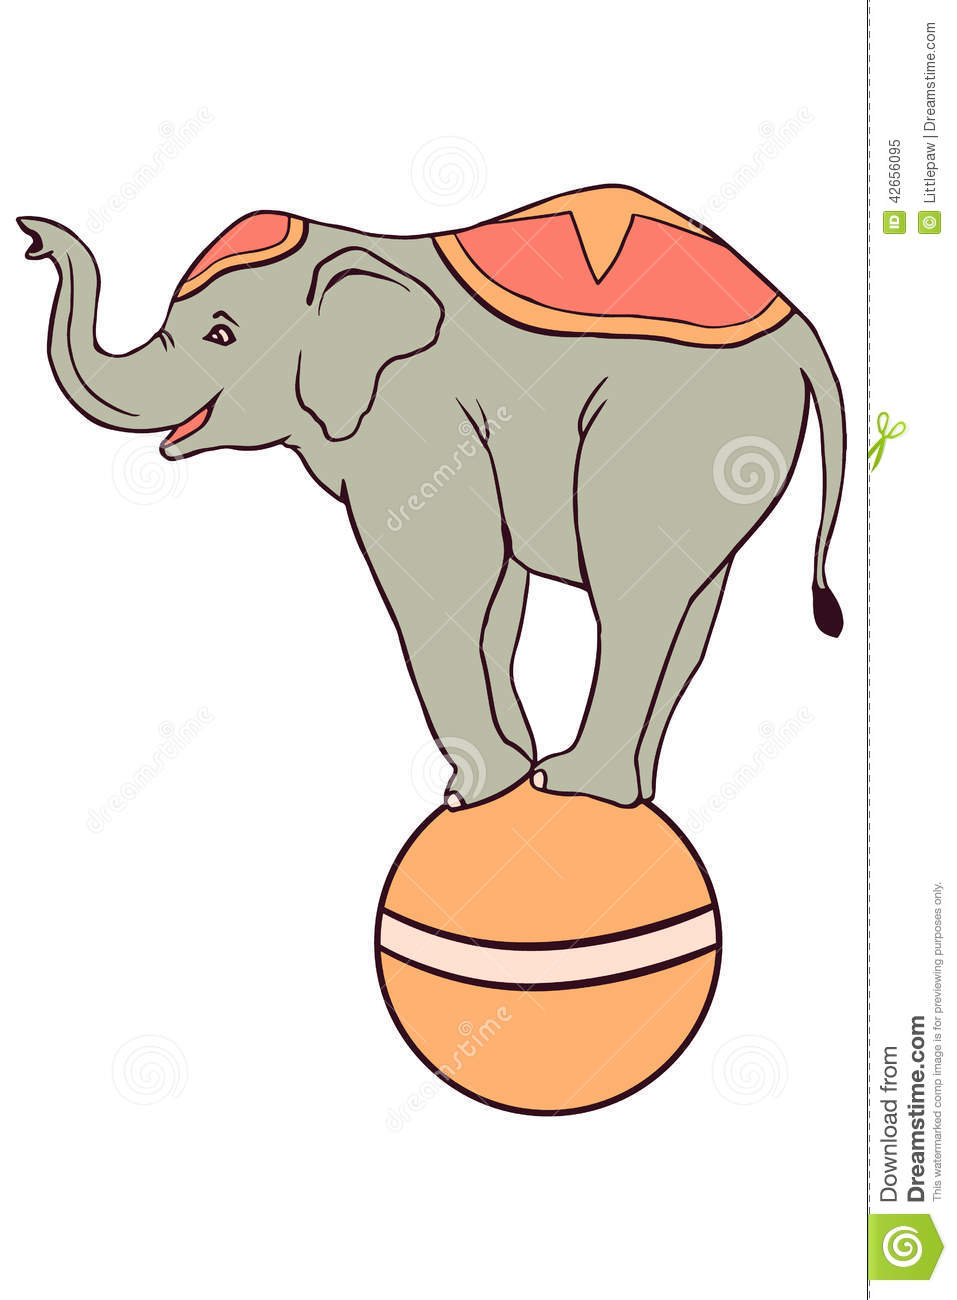 Circus Illustration With Elephant Stock Vector ...